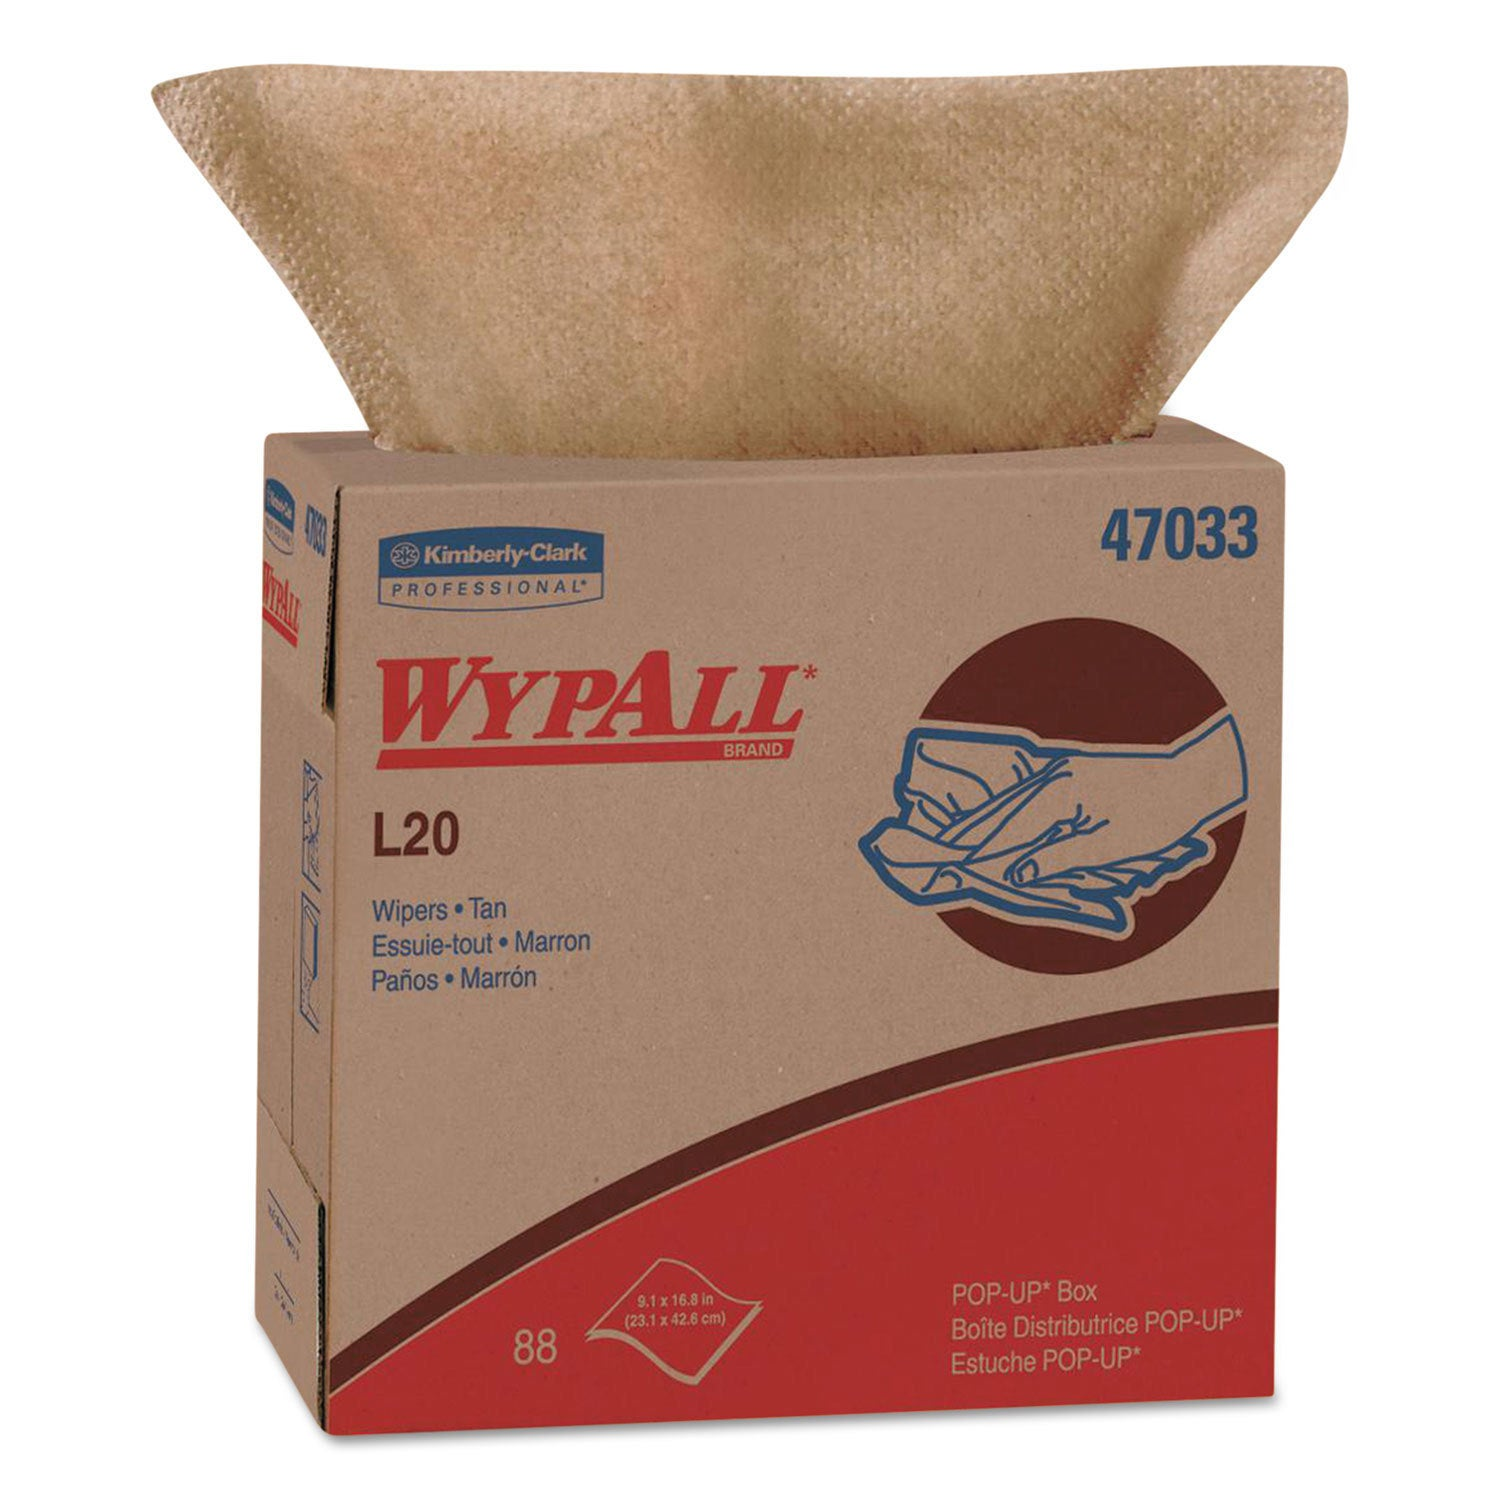 Wypall L20 Wipers 9 1/10 x 16 4/5 Brown 88/POP-UP Box 10 ...